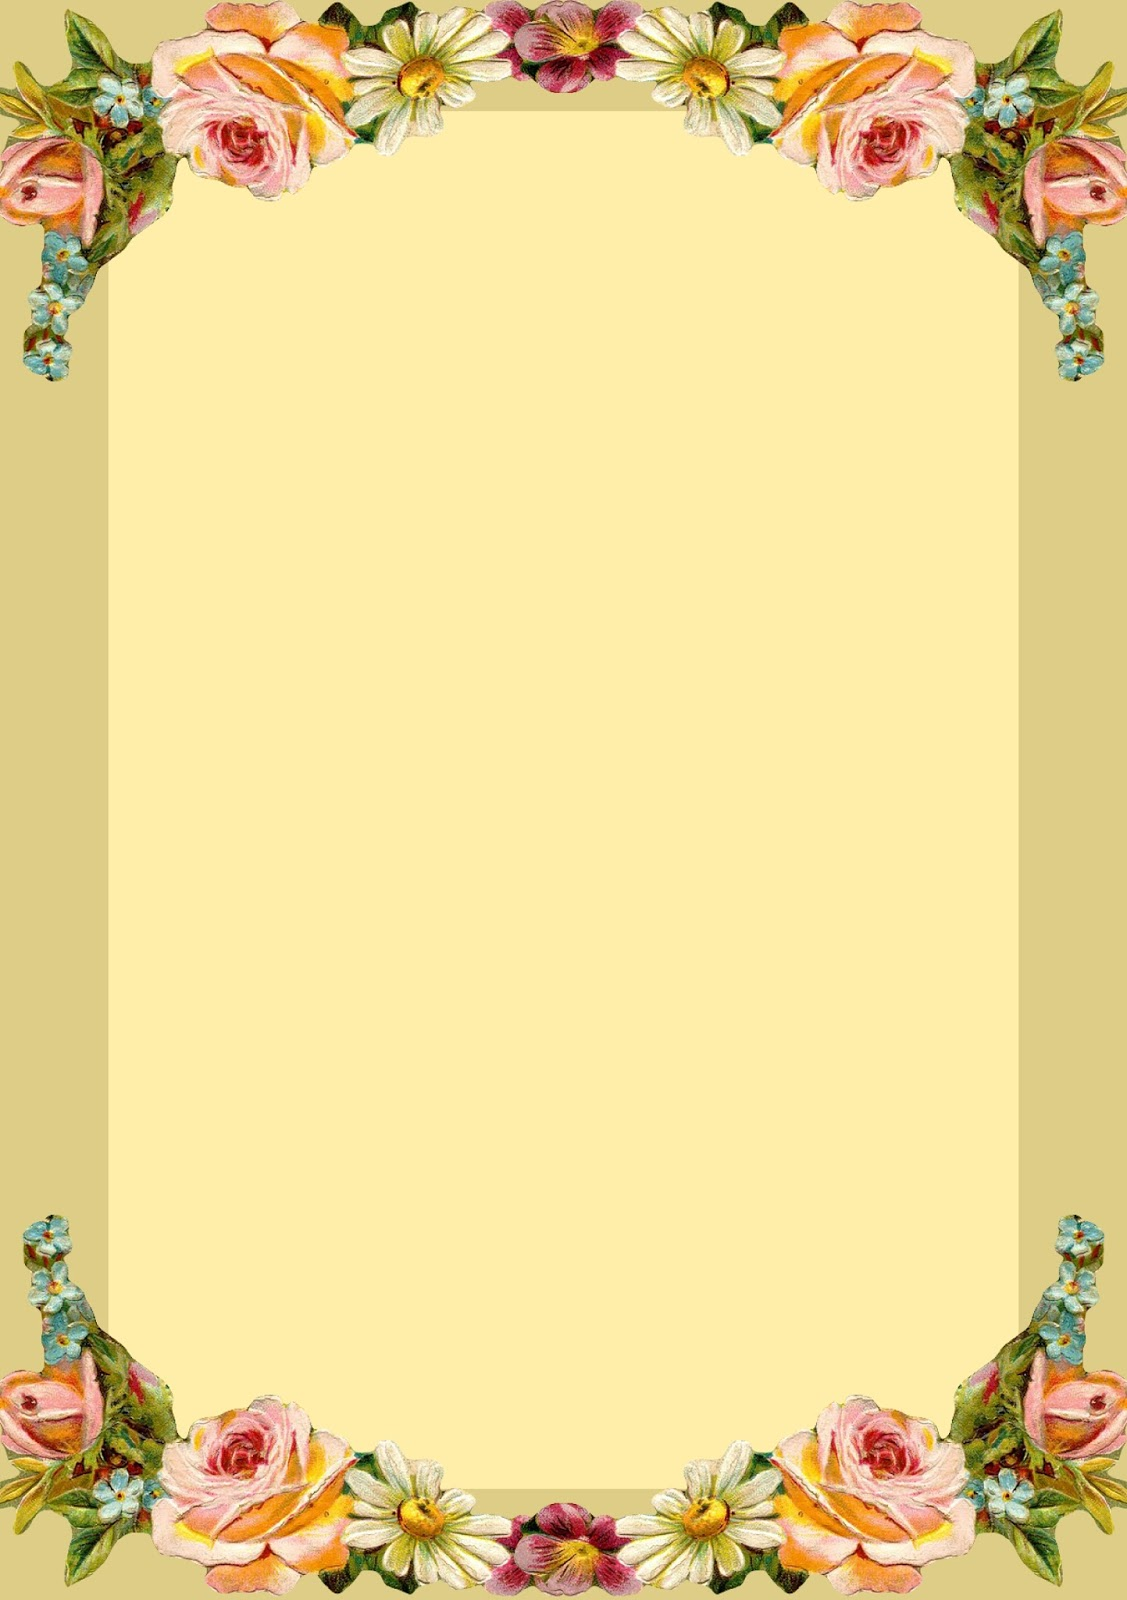 A4 Paper Size Picture Frames - Page 4 - Frame Design & Reviews ✓